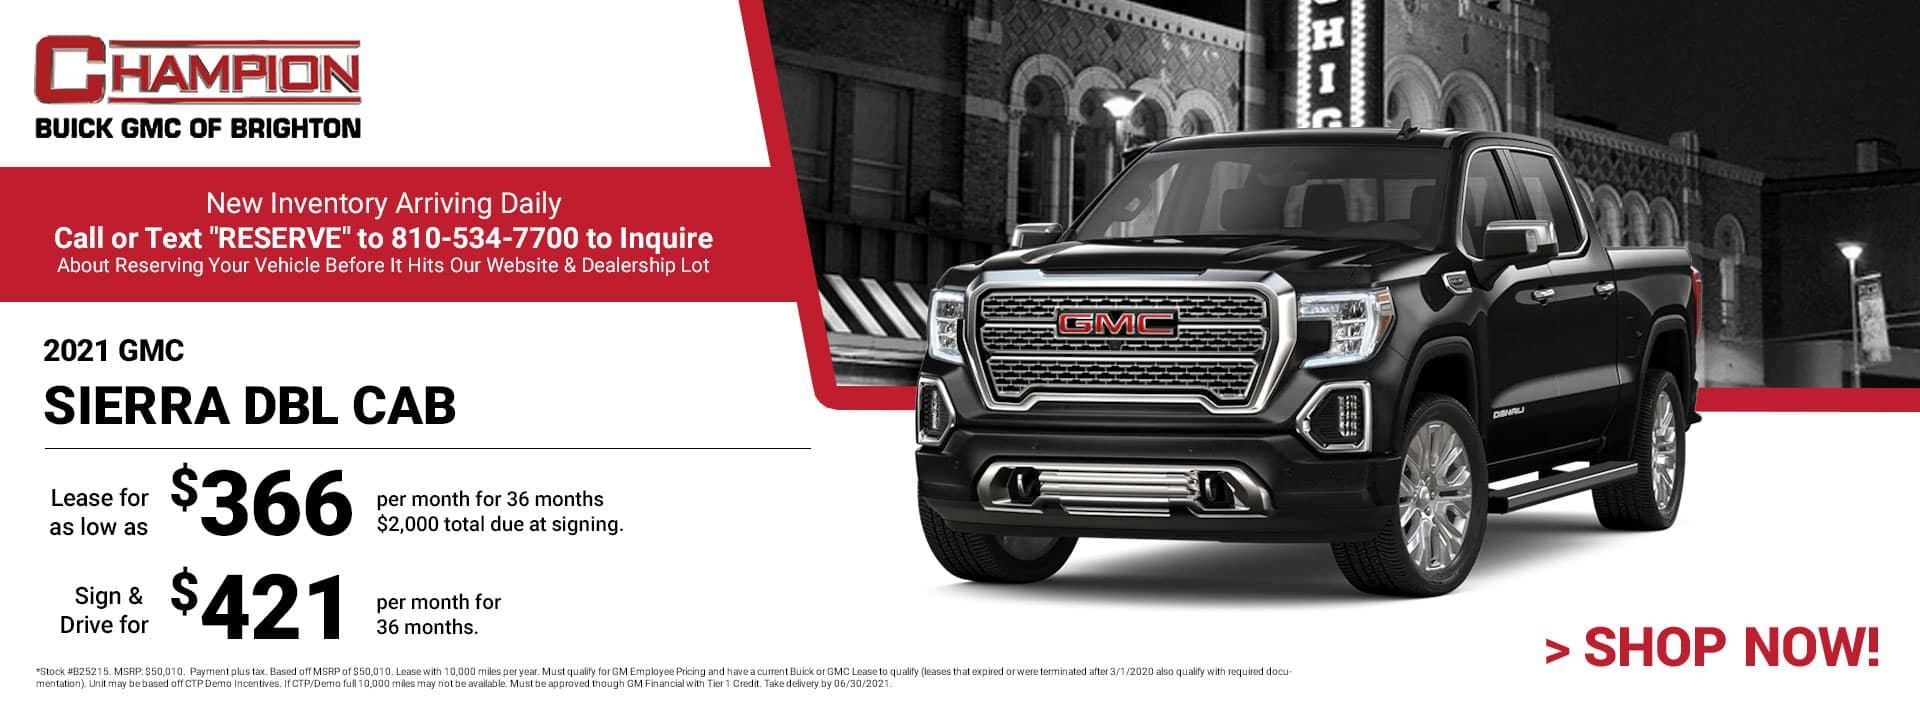 2021 GMC Sierra Dbl Cab - Lease for just: $366 per month for 36 months $2,000 total due at signing. Sign & Drive for $421 per month for 36 months. *Stock #B25215. MSRP: $50,010